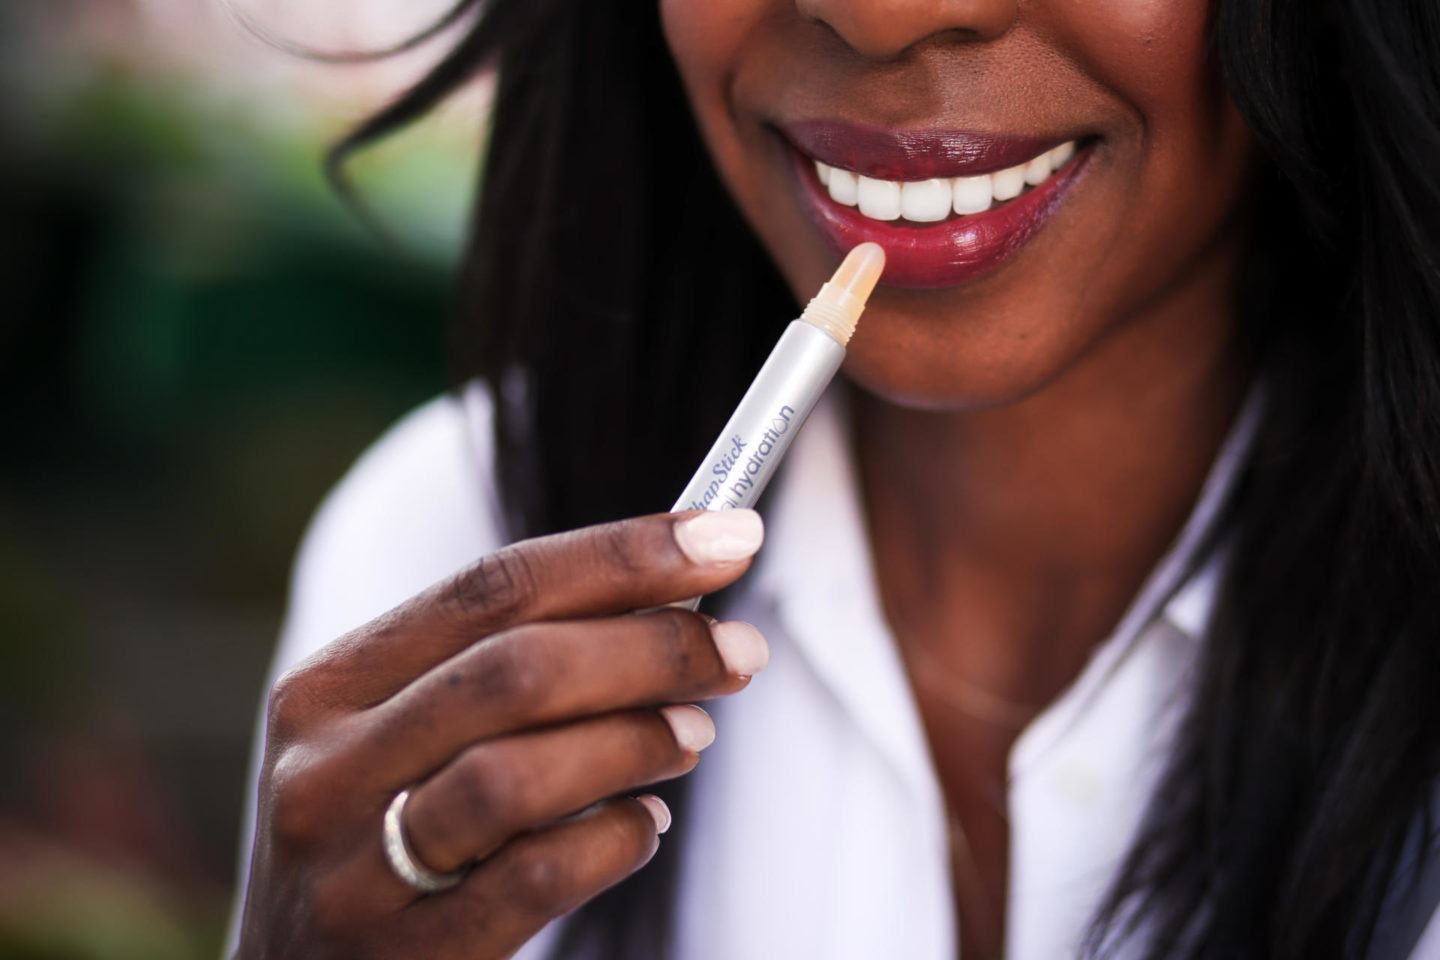 Dominique Baker using Chapstick Total Hydrations lip care products